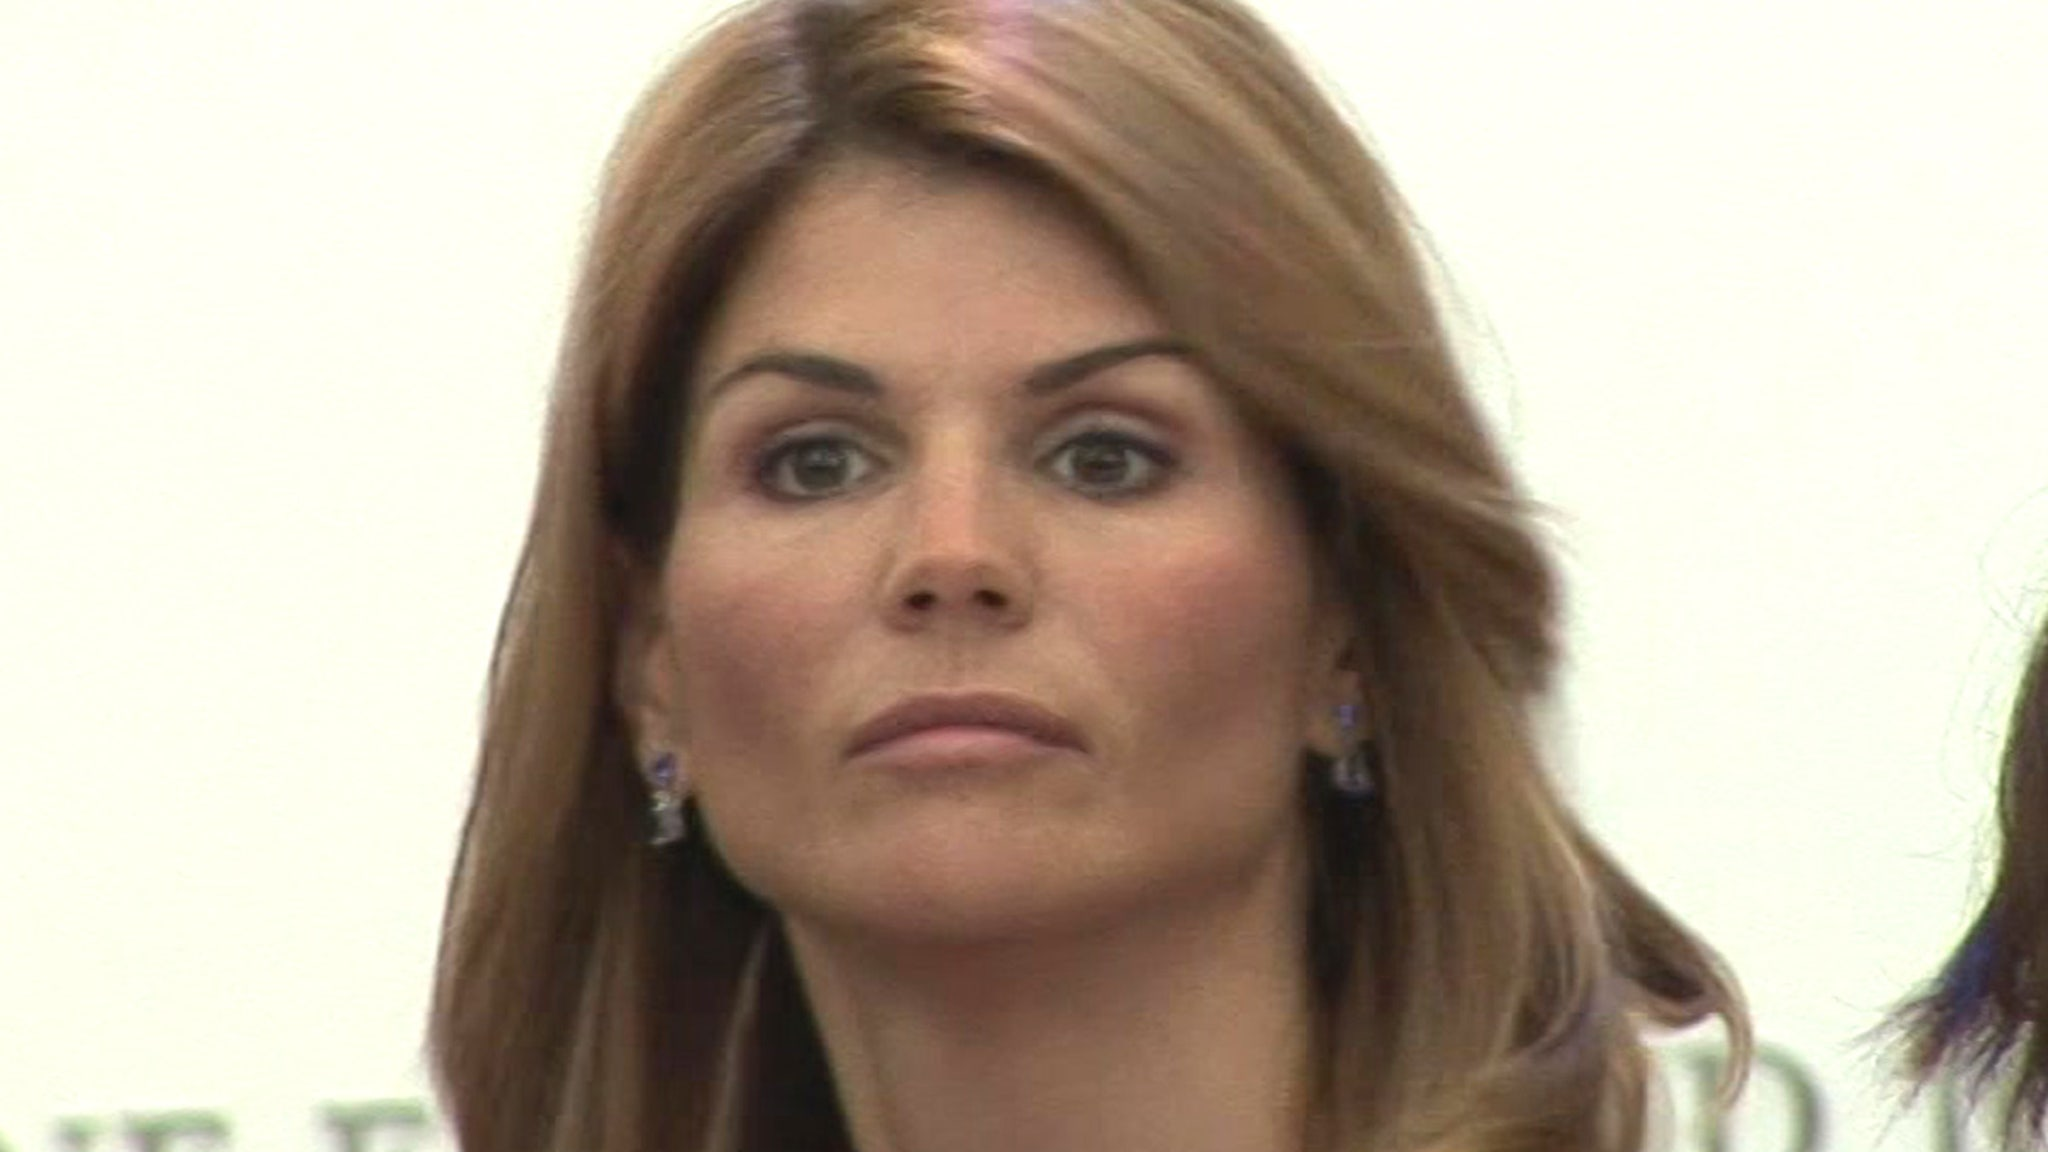 Lori Loughlin Surrenders to Serve Prison Sentence in College Admissions Scandal